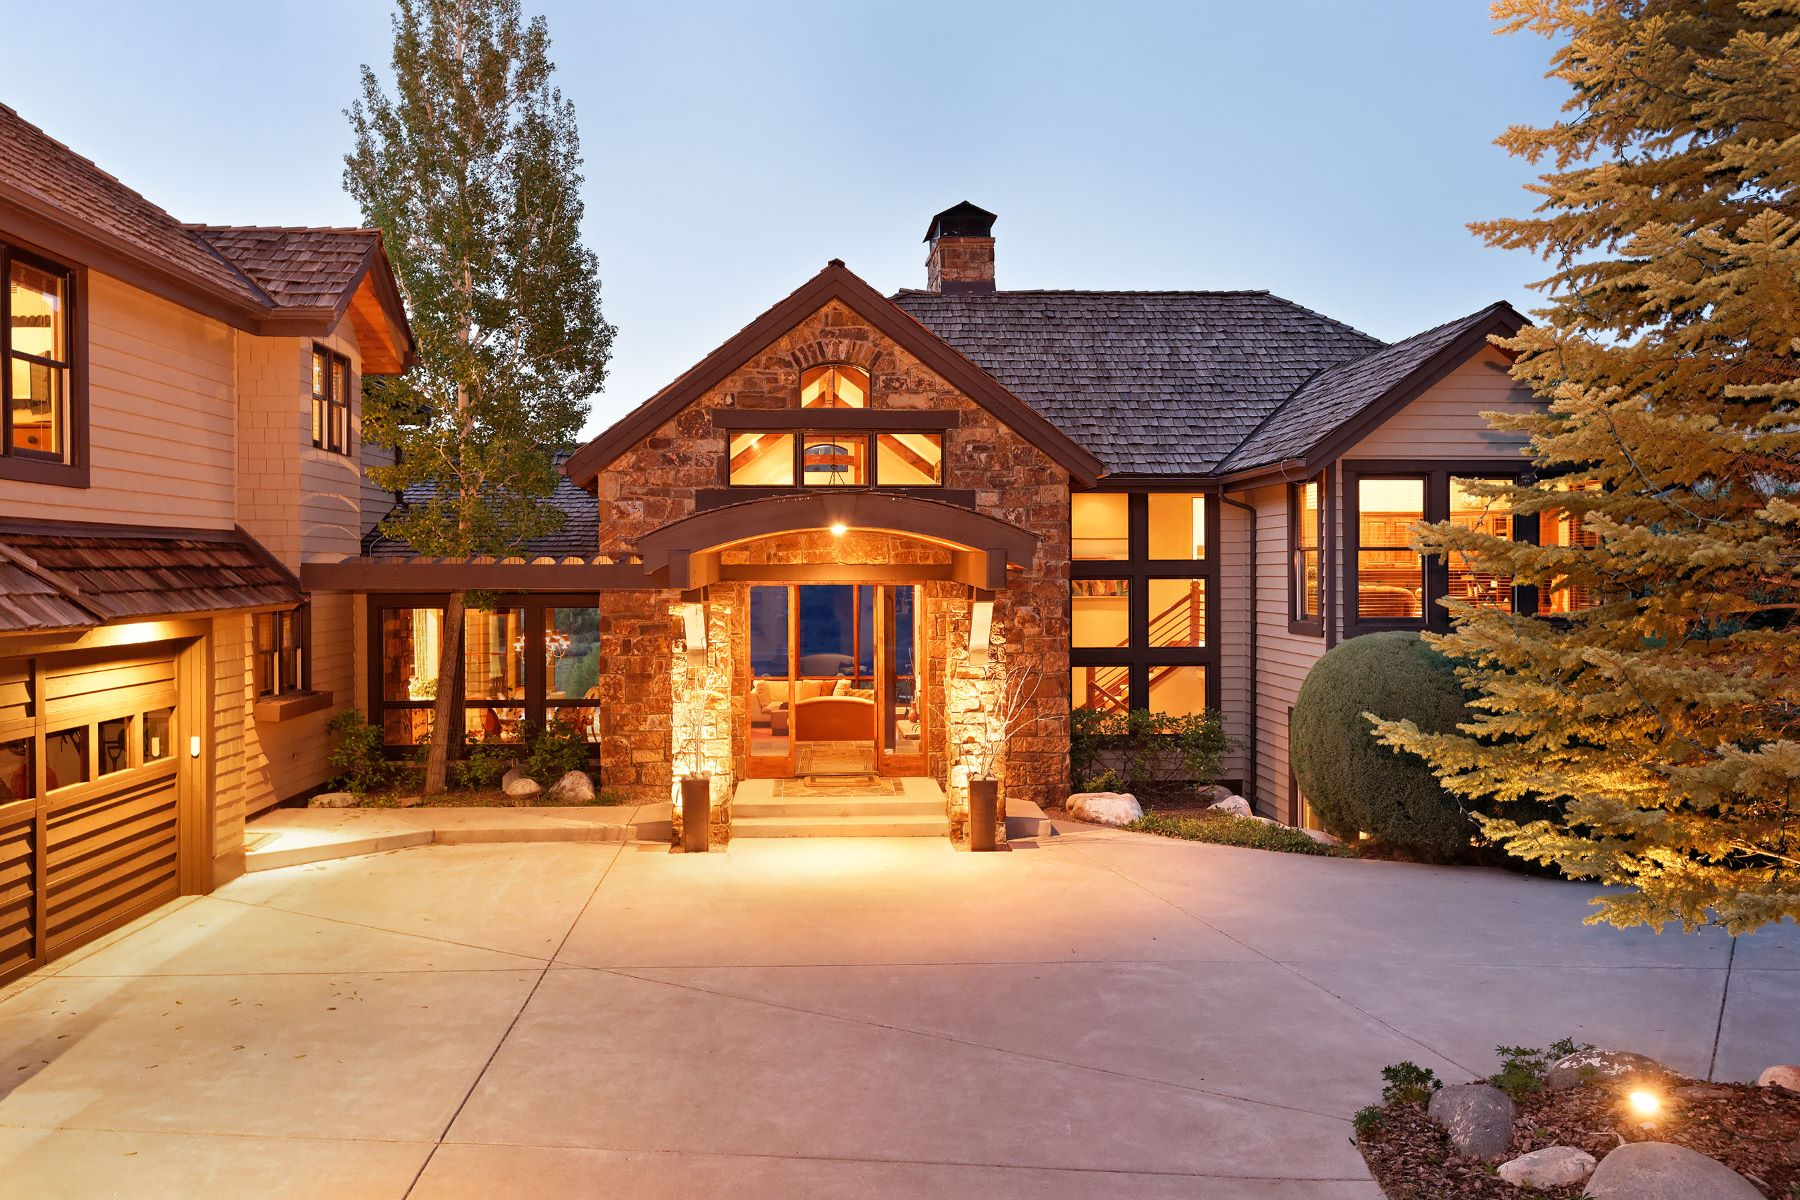 Single Family Home for Active at Spectacular Aspen Glen Home 198 Midland Loop Carbondale, Colorado 81623 United States